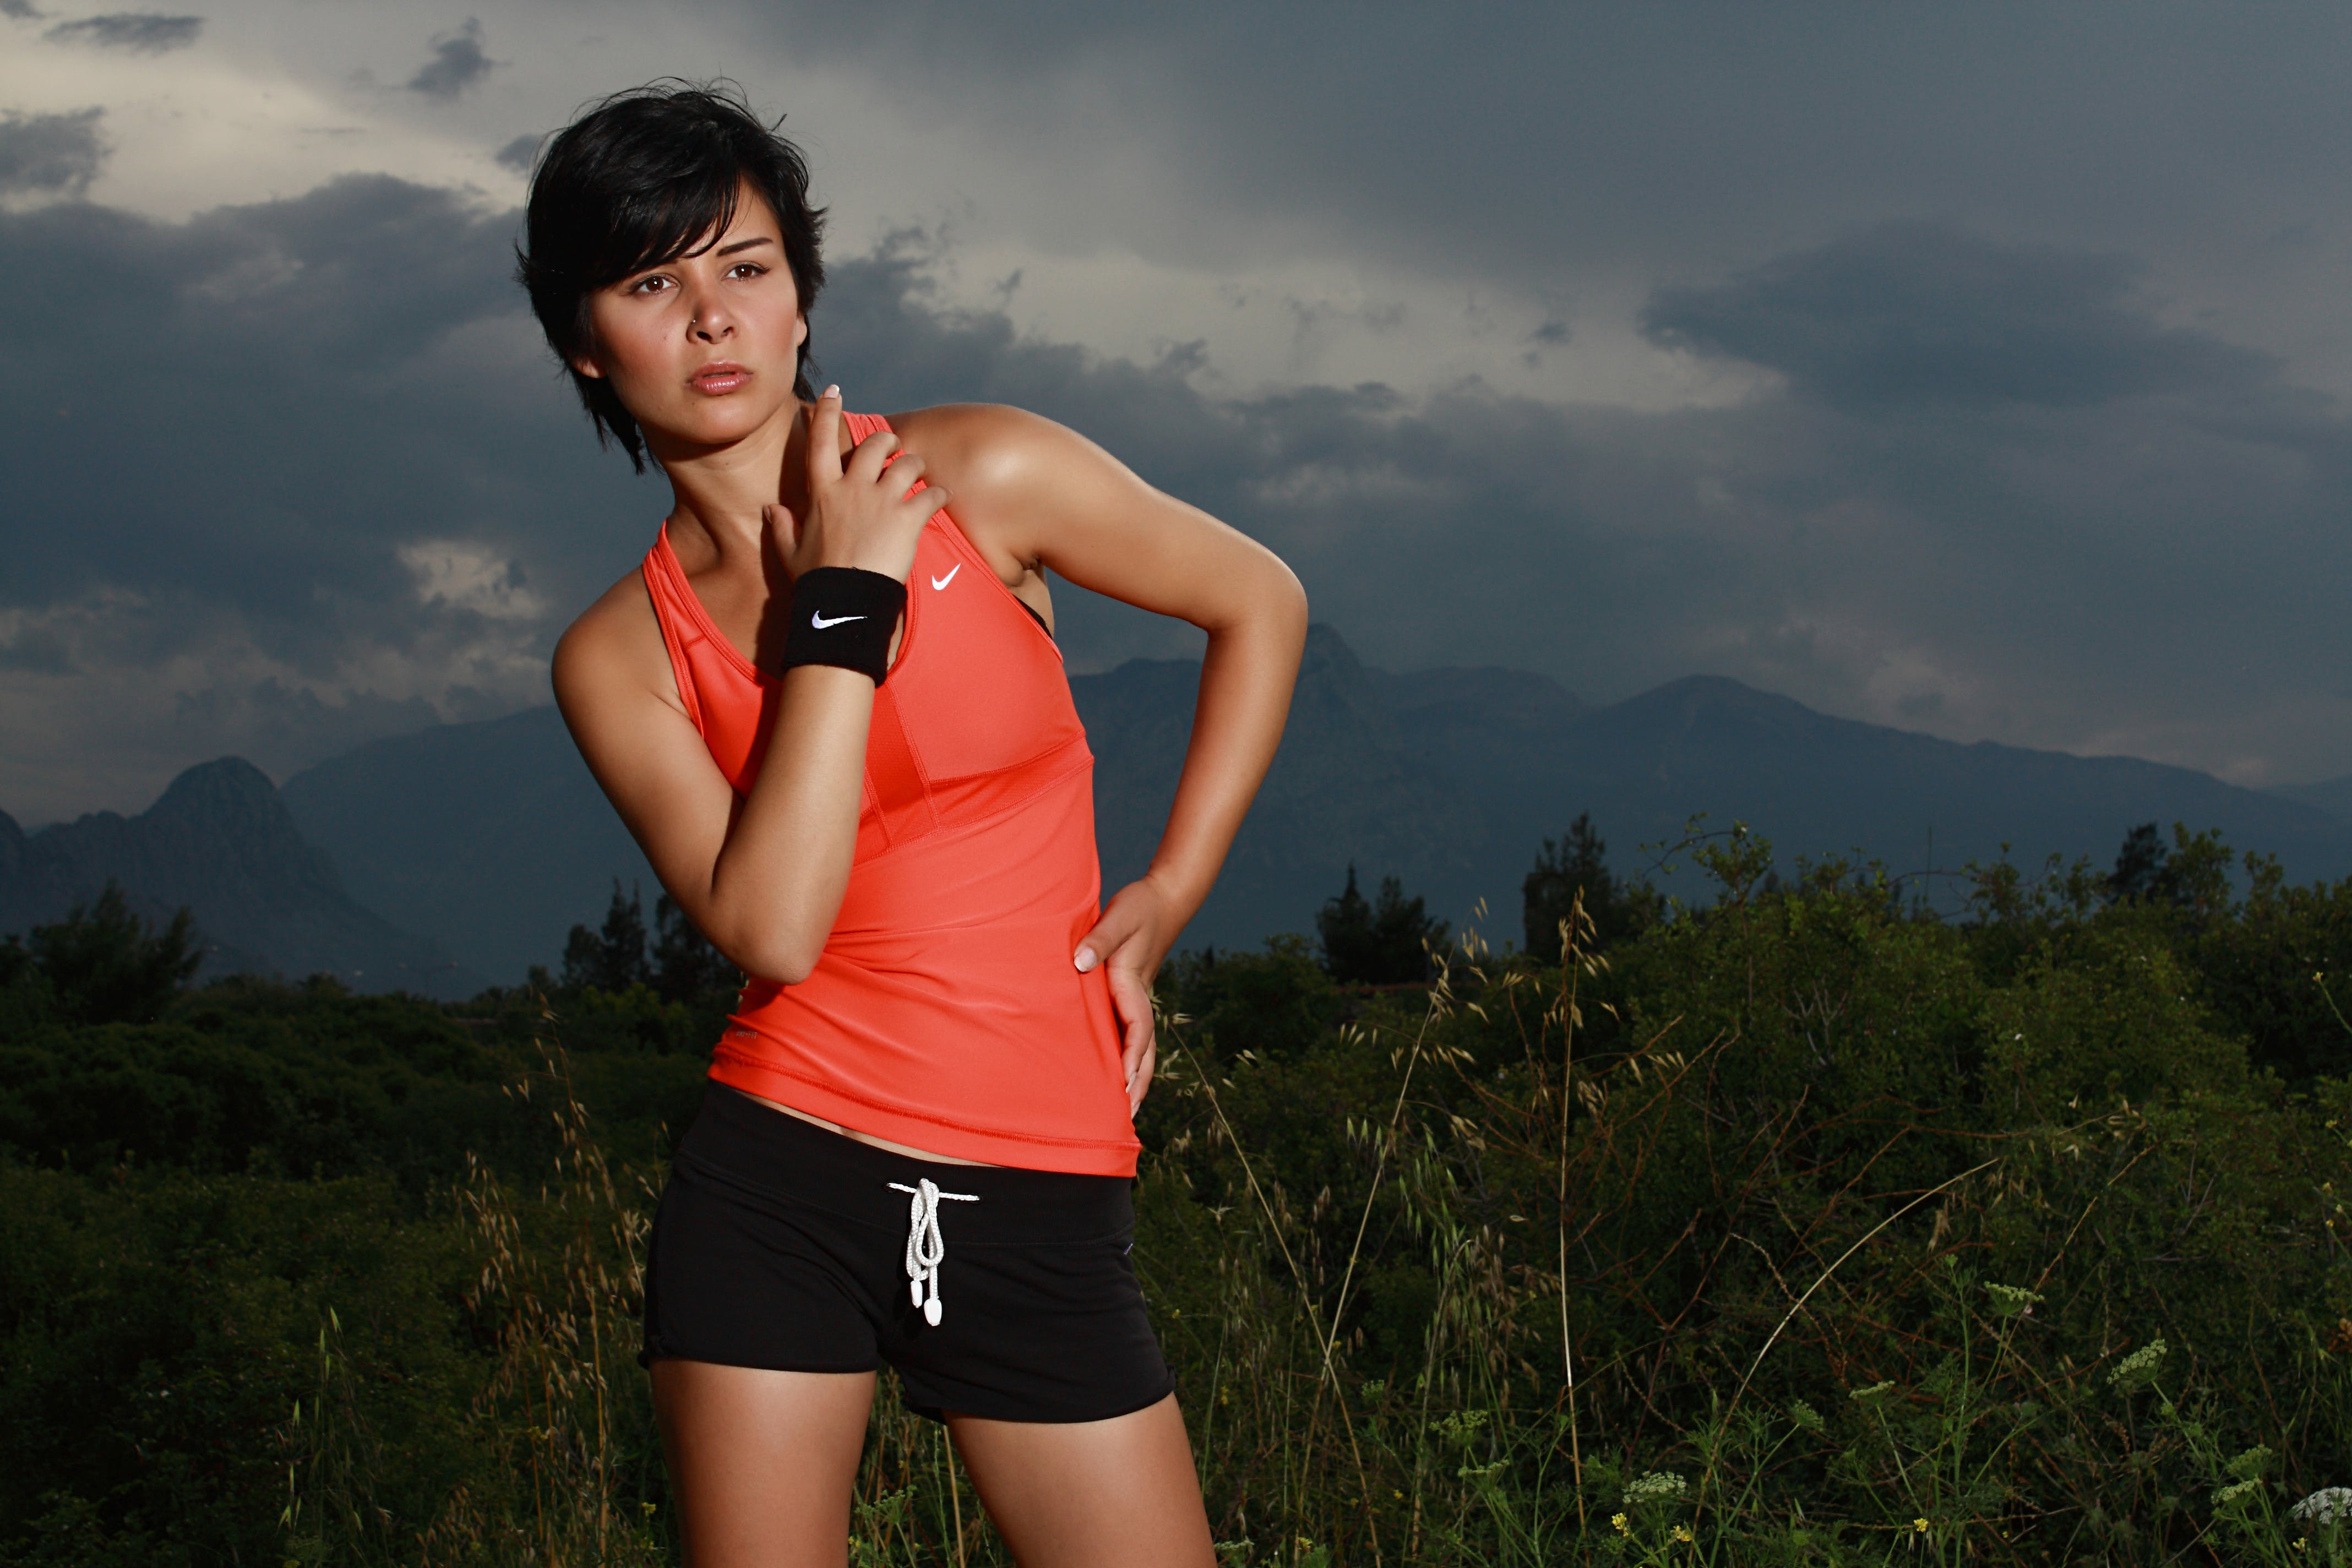 Woman in Orange Nike Tank Top Surrounded With Grasses